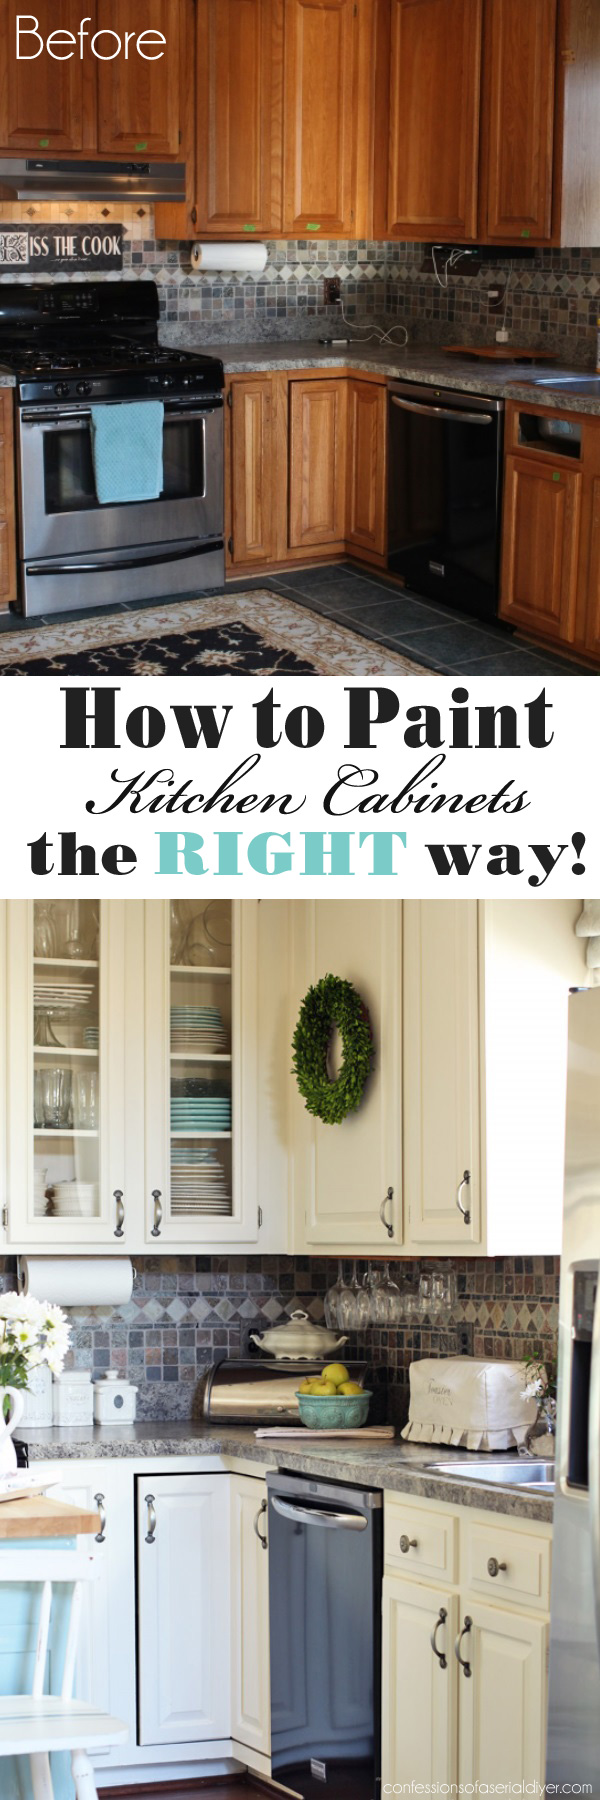 Can I Use Furniture Paint On My Kitchen Cabinets